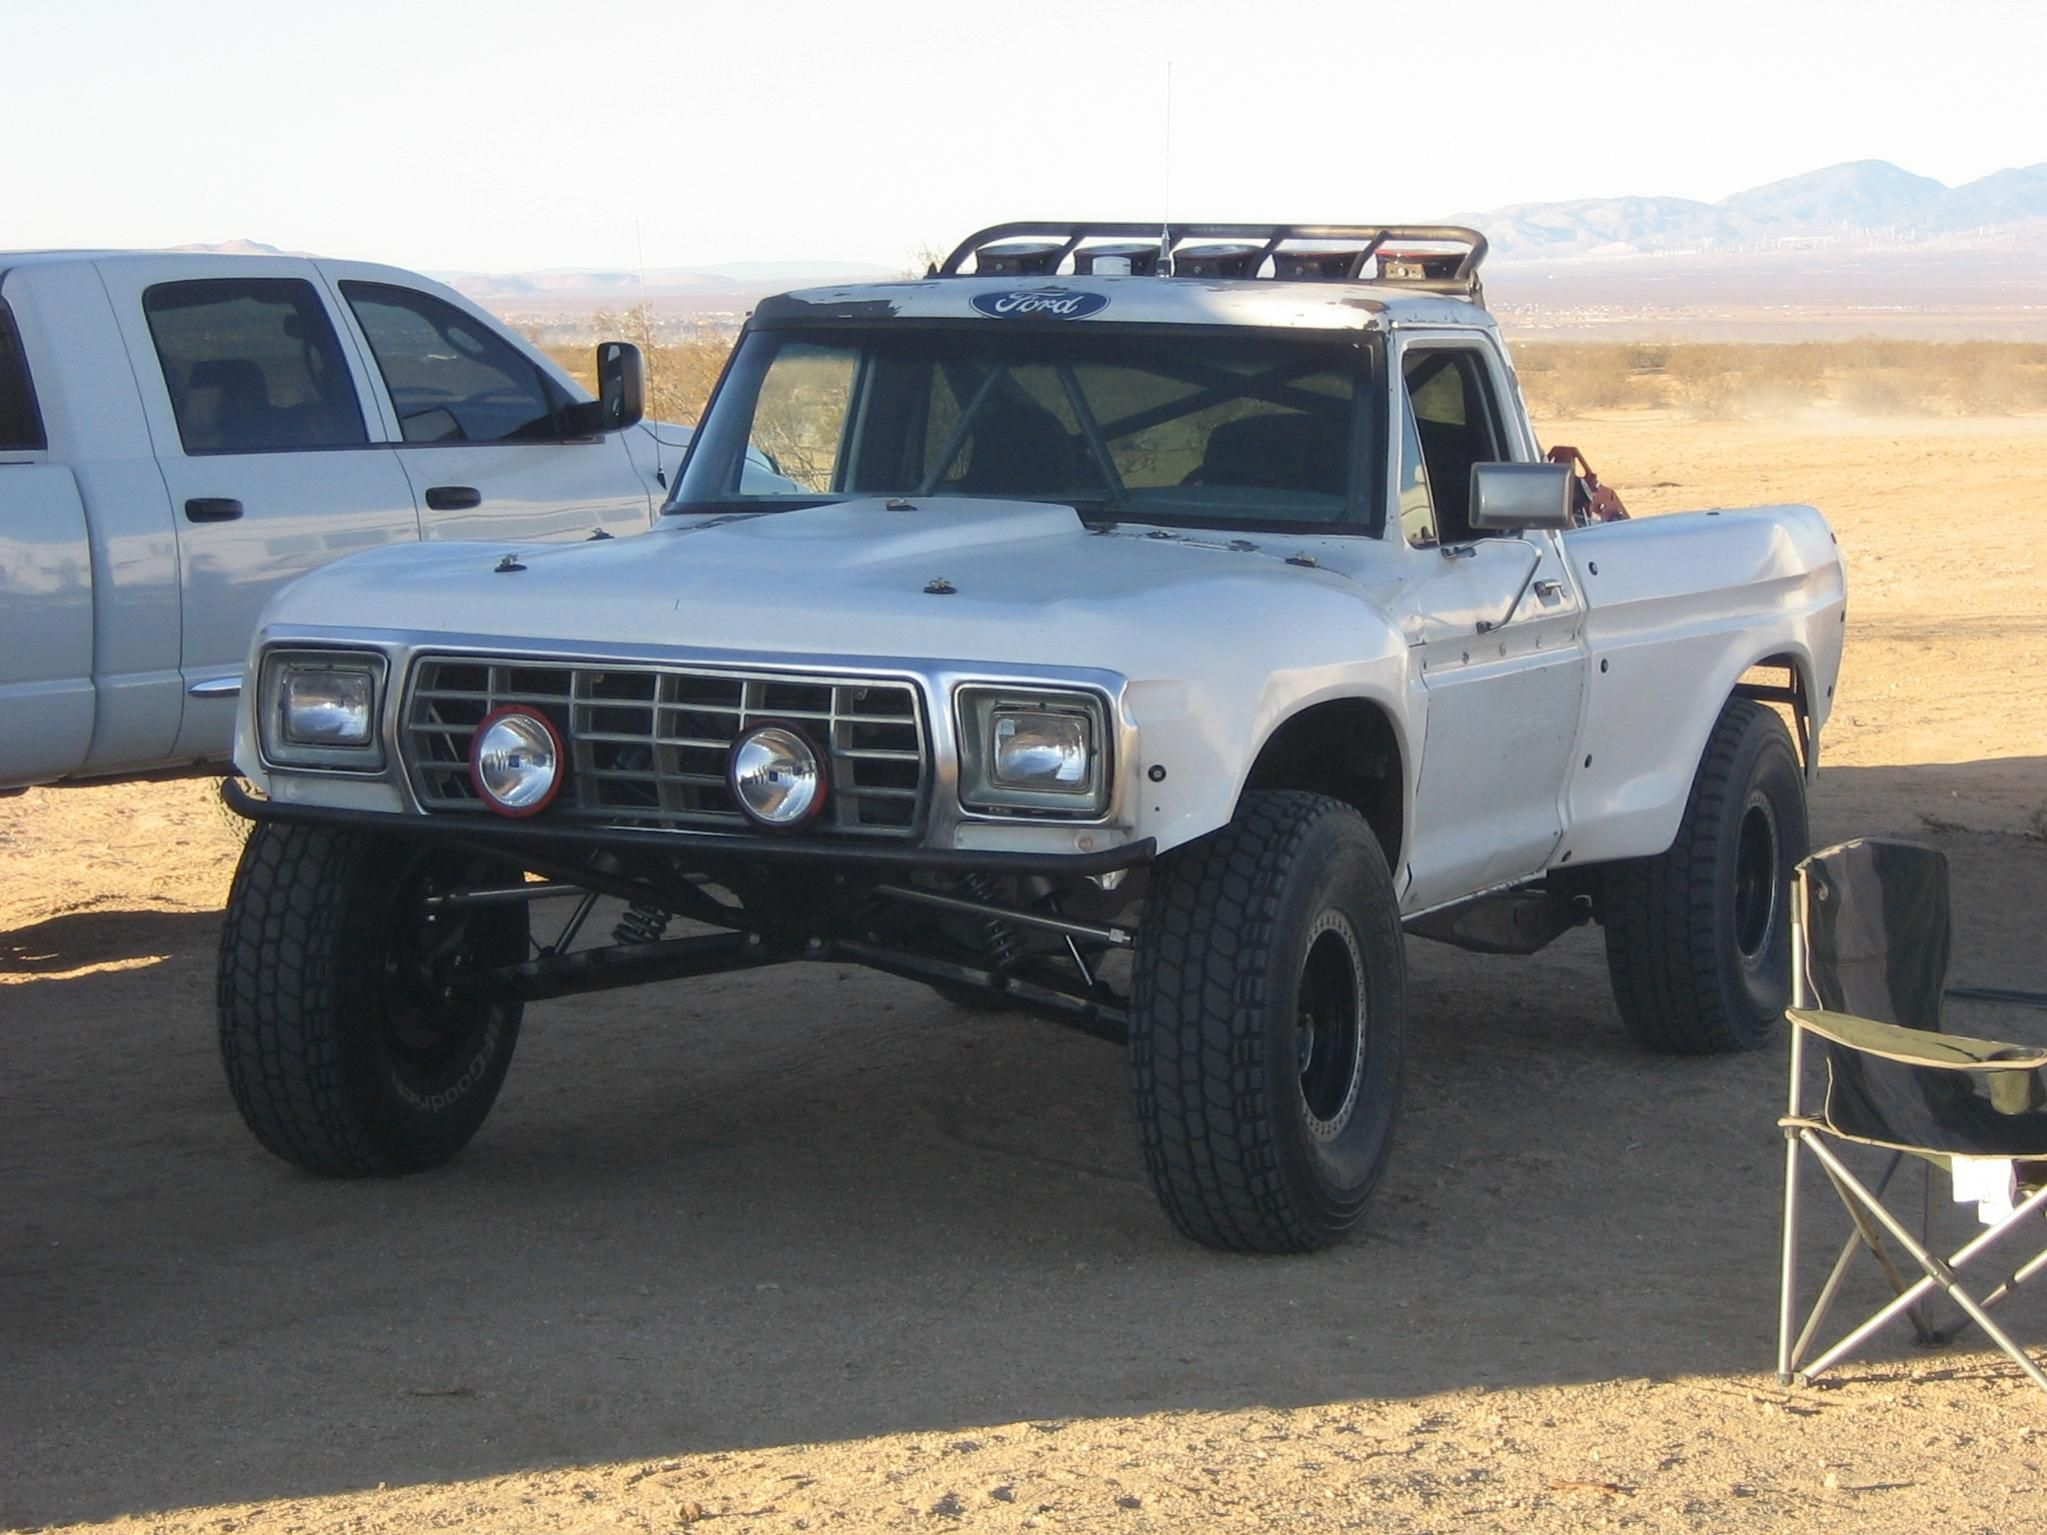 Diesel ford bronco for sale - But Diesel With Custom Ttb Up Front And Cantilever In The Rear